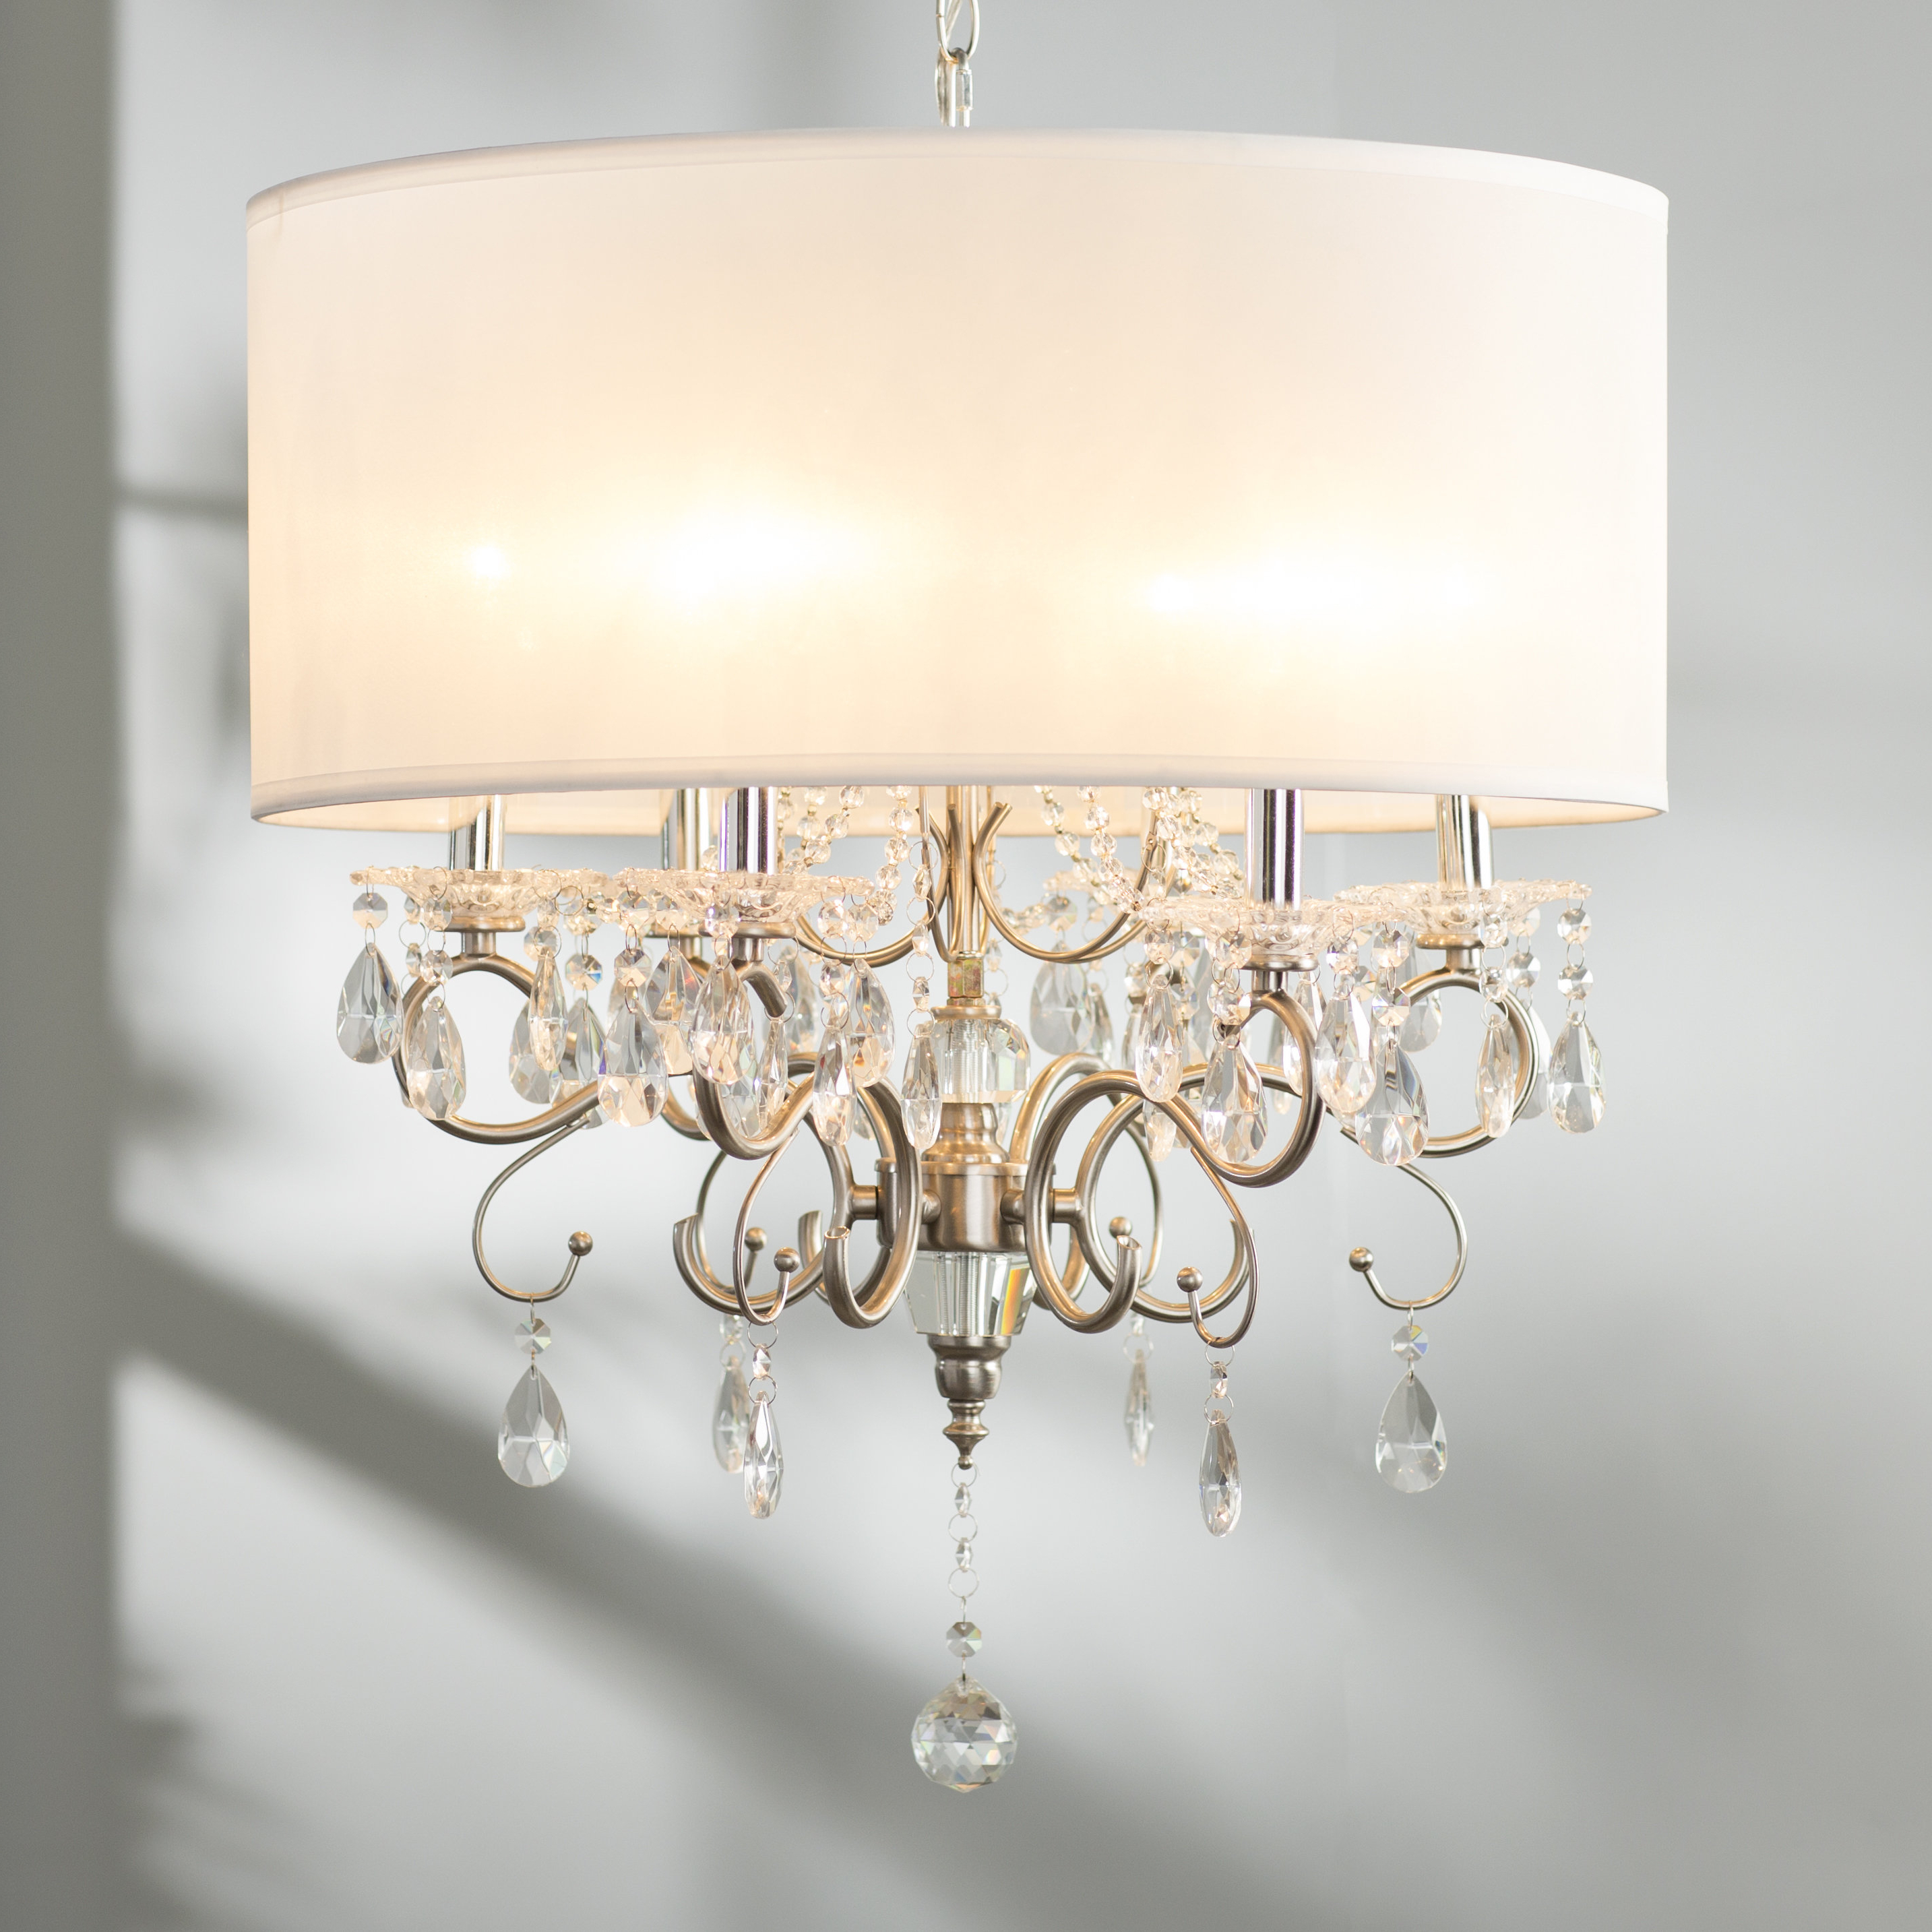 Wayfair Intended For Current Sherri 6 Light Chandeliers (View 22 of 25)